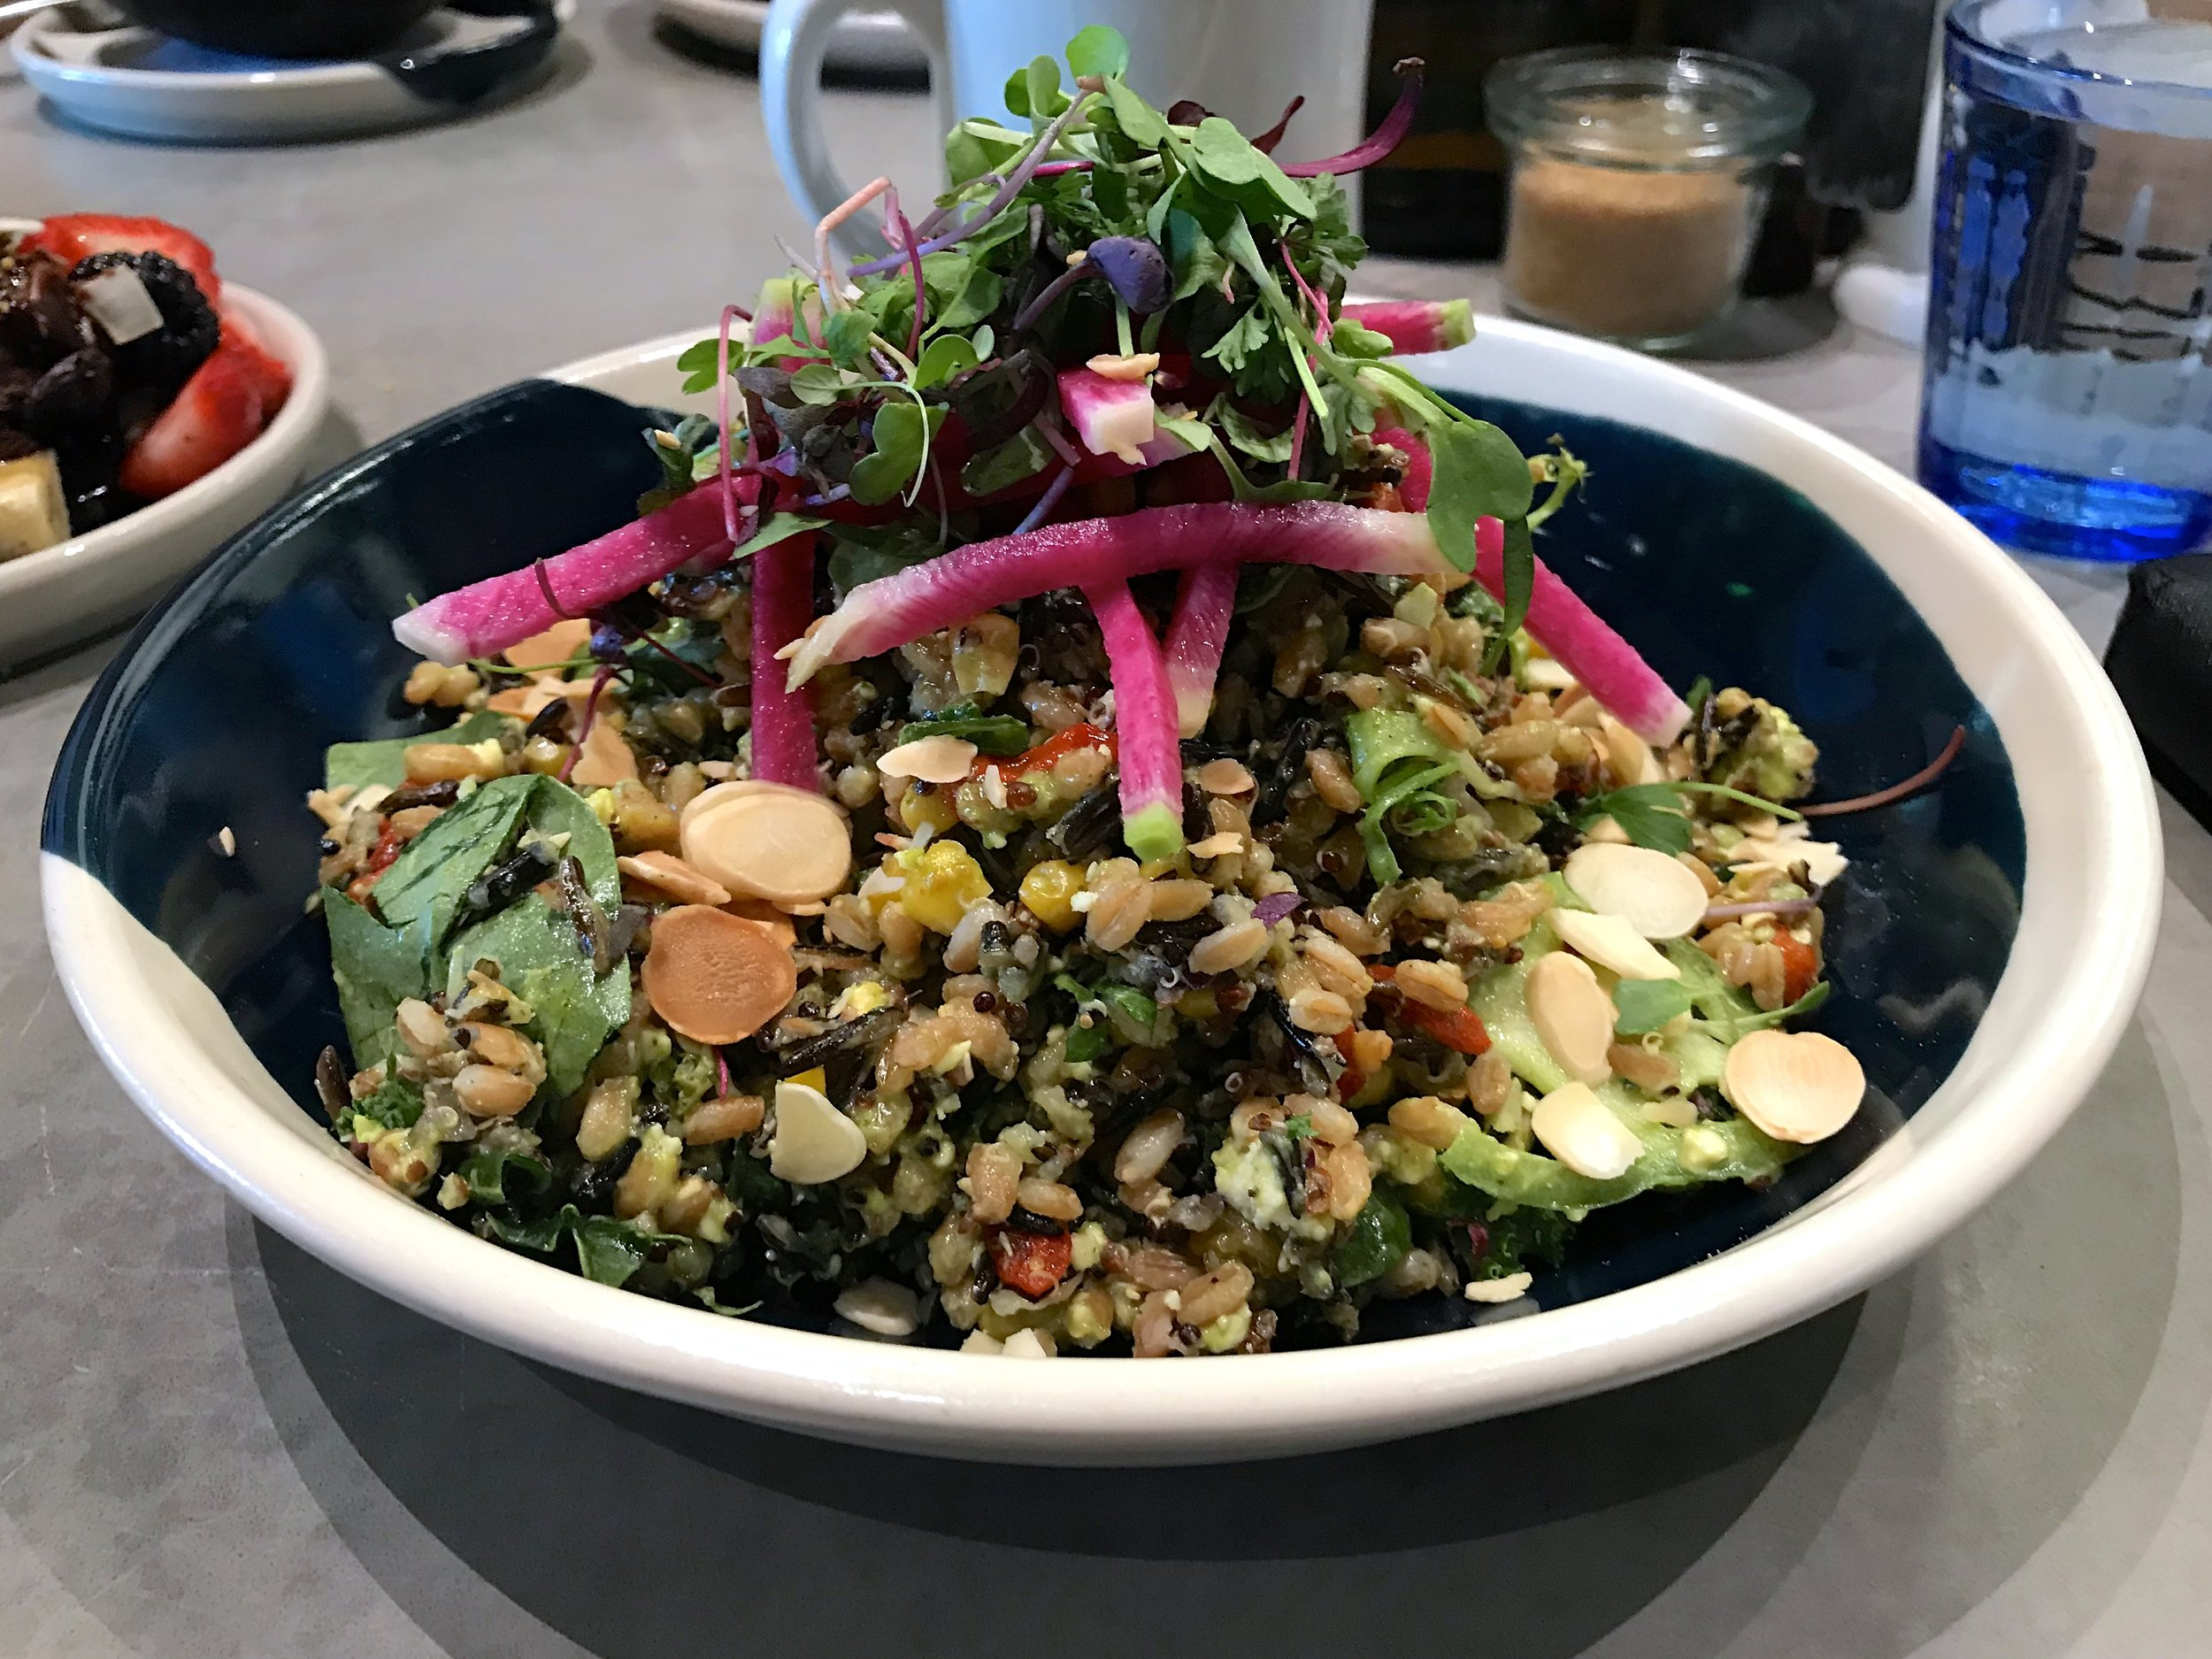 This is the Superfood Grain Salad from Five5eeds.